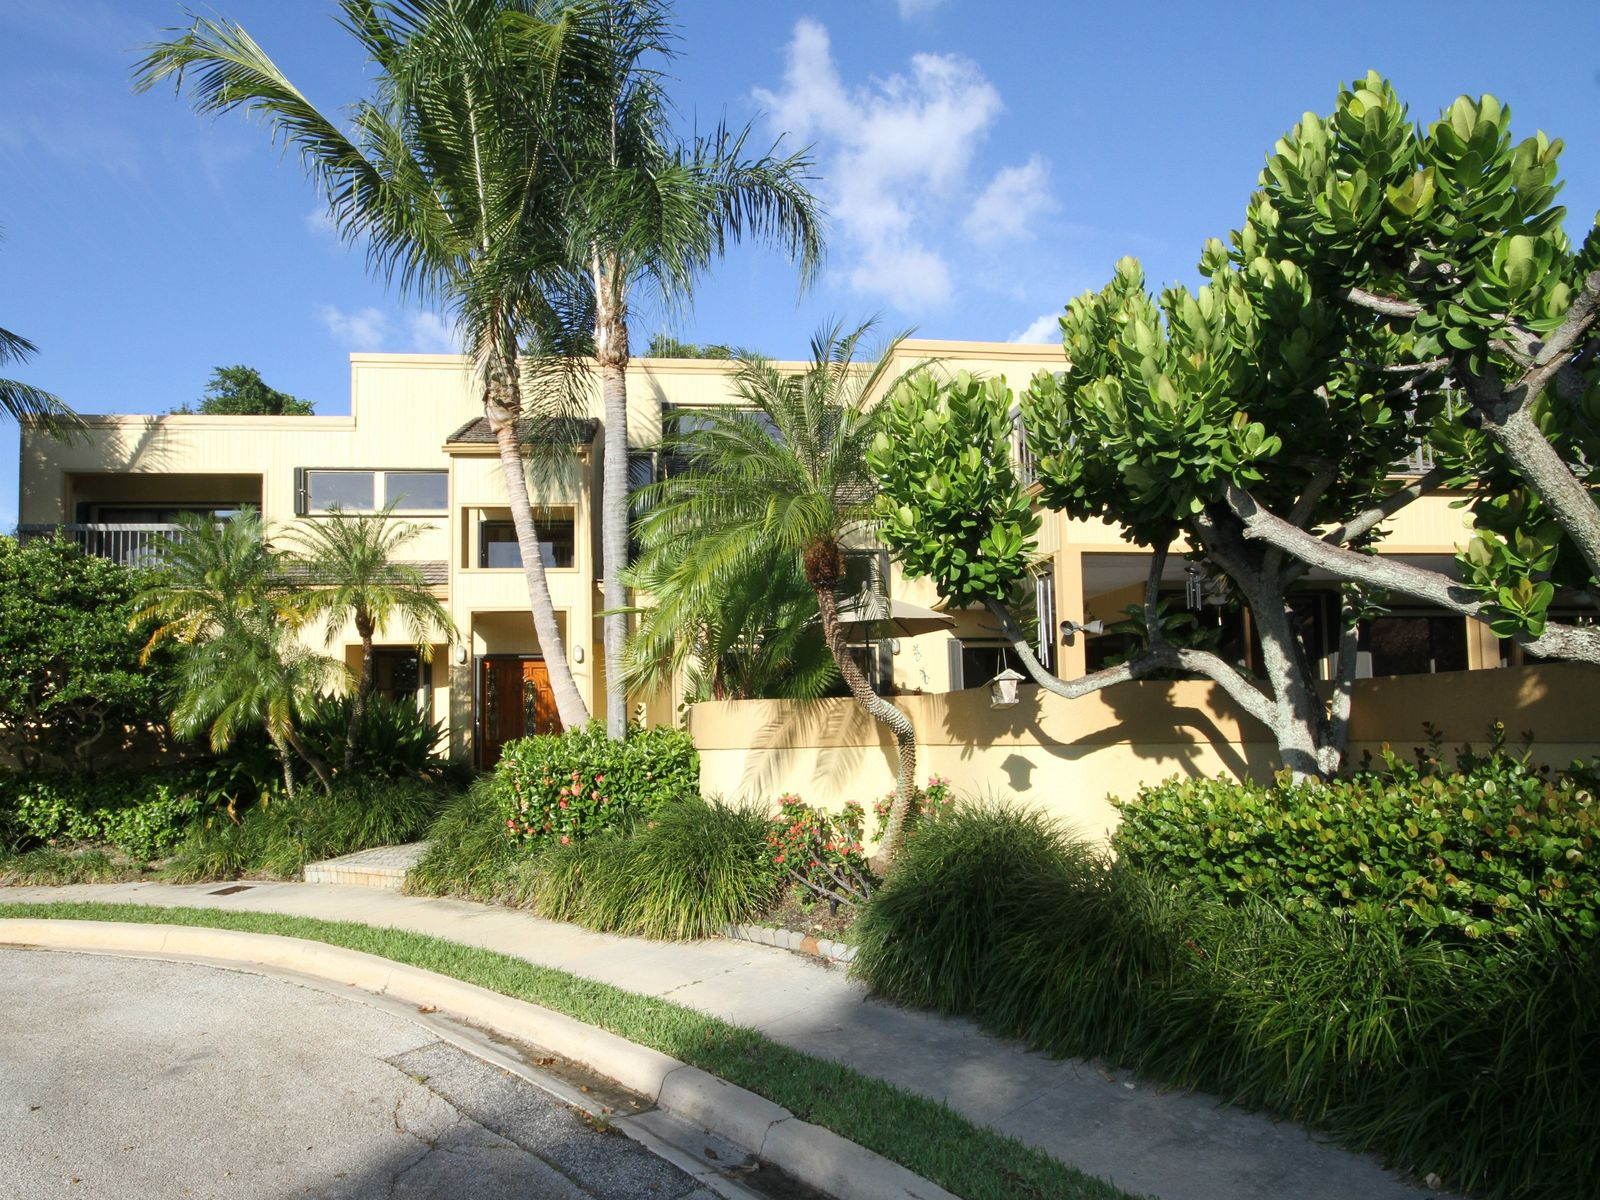 Flagler Promenade South, West Palm Beach FL Single Family Home - Palm Beach Real Estate